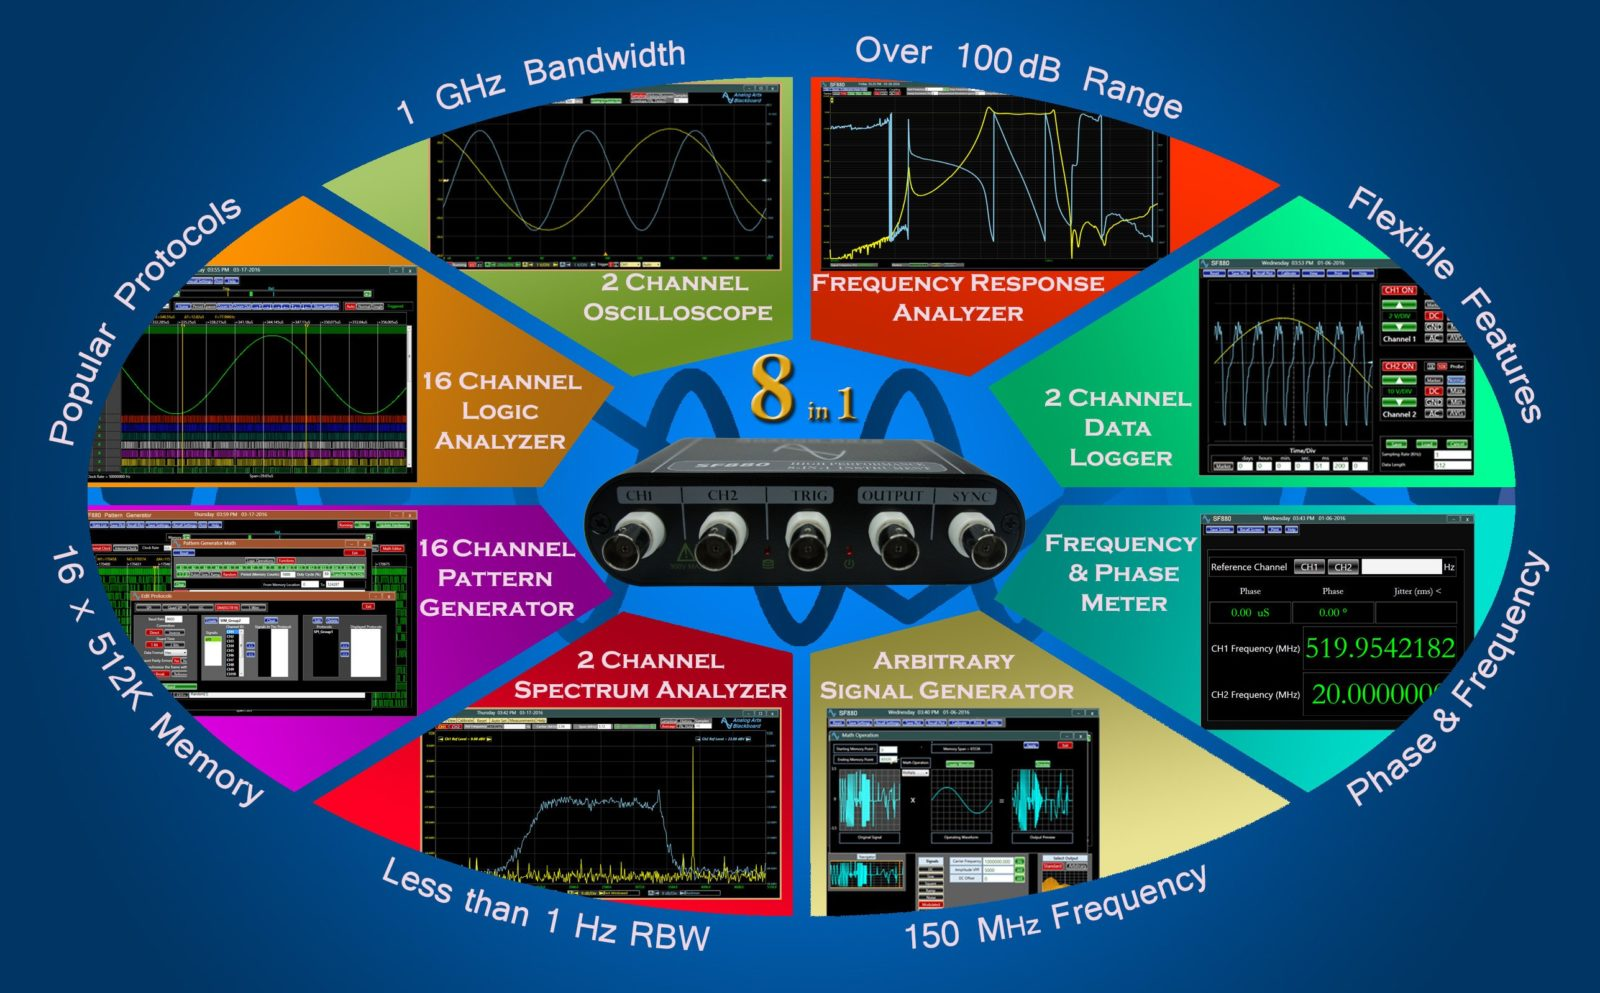 SF880 8-in-1 oscilloscope frequency response analyzer Infographic